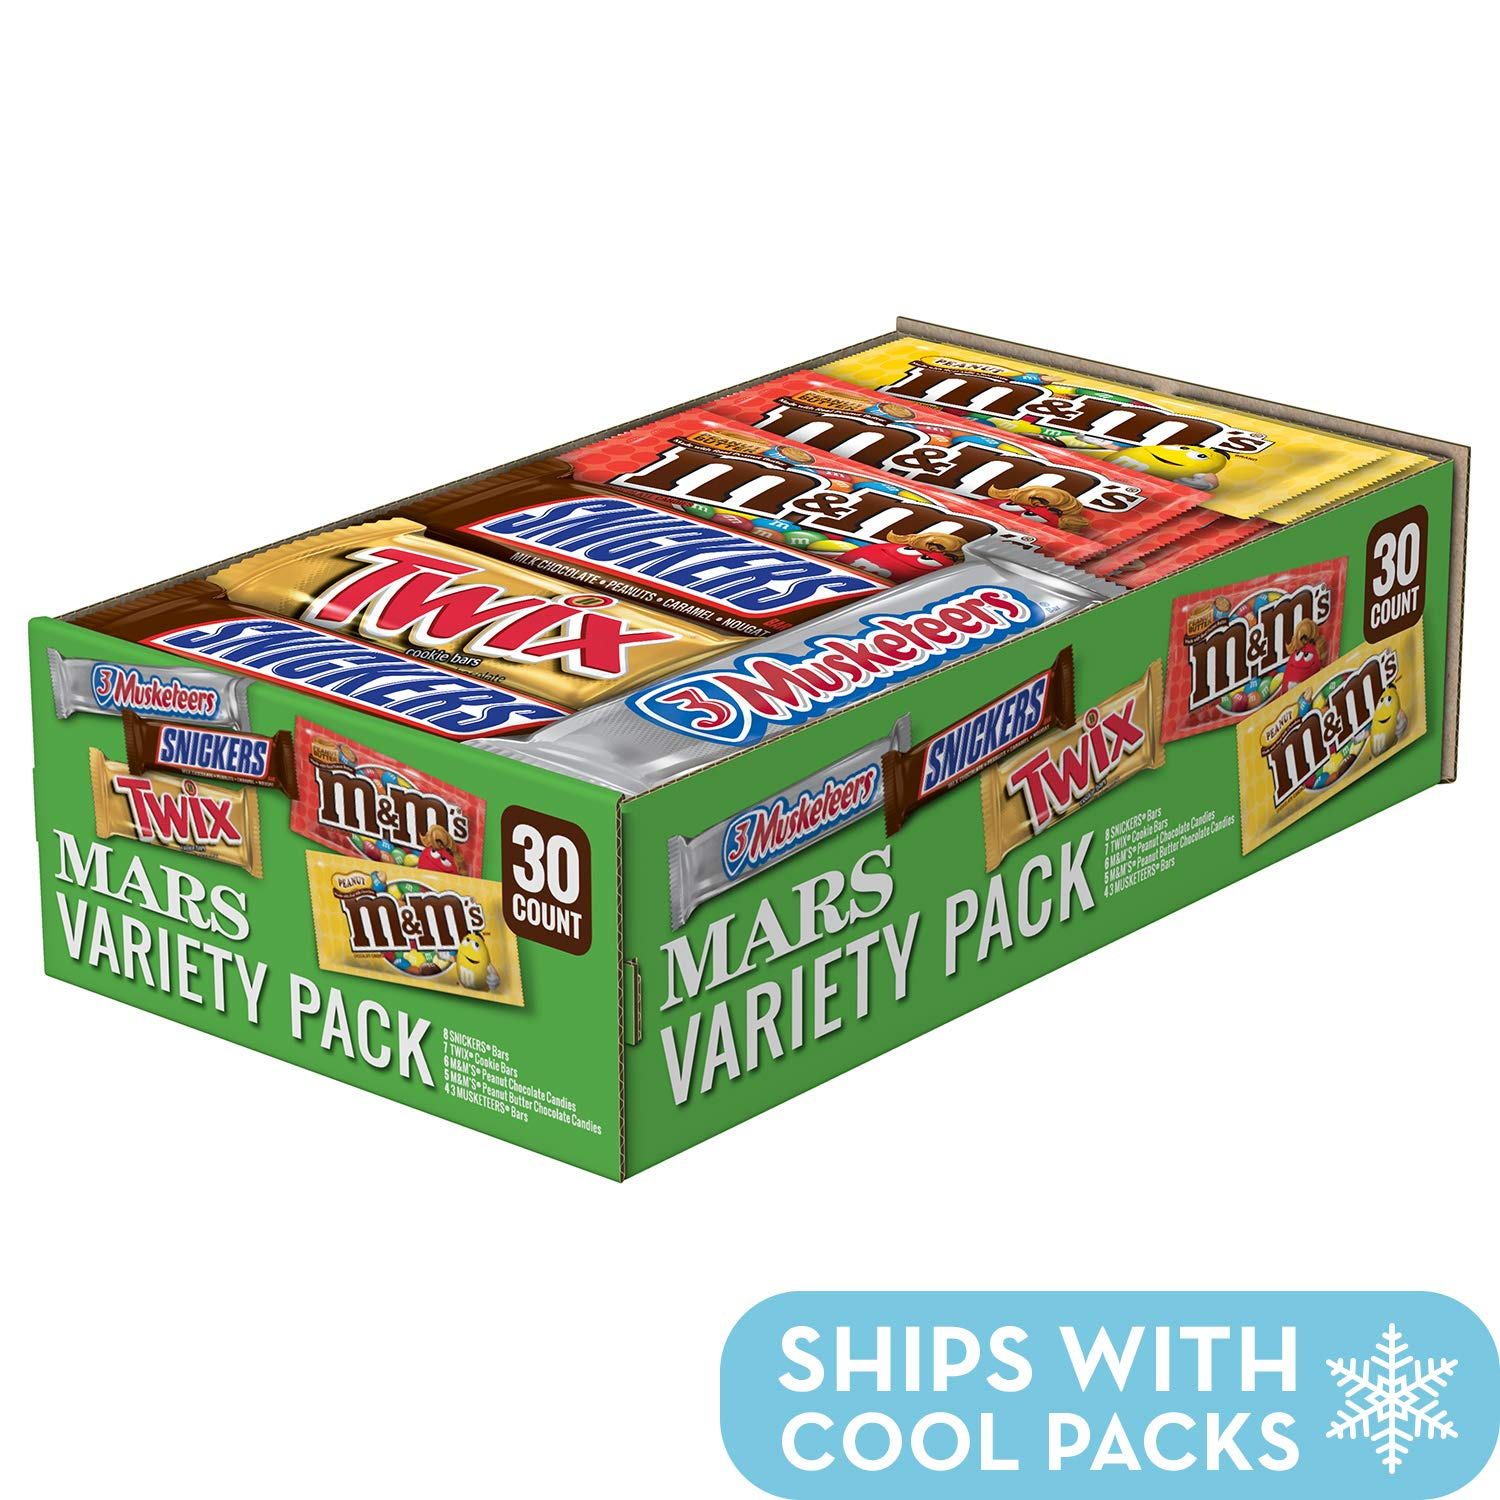 SNICKERS, M&M'S, 3 MUSKETEERS & TWIX Full Size Bars Variety Mix, 30-Count Box